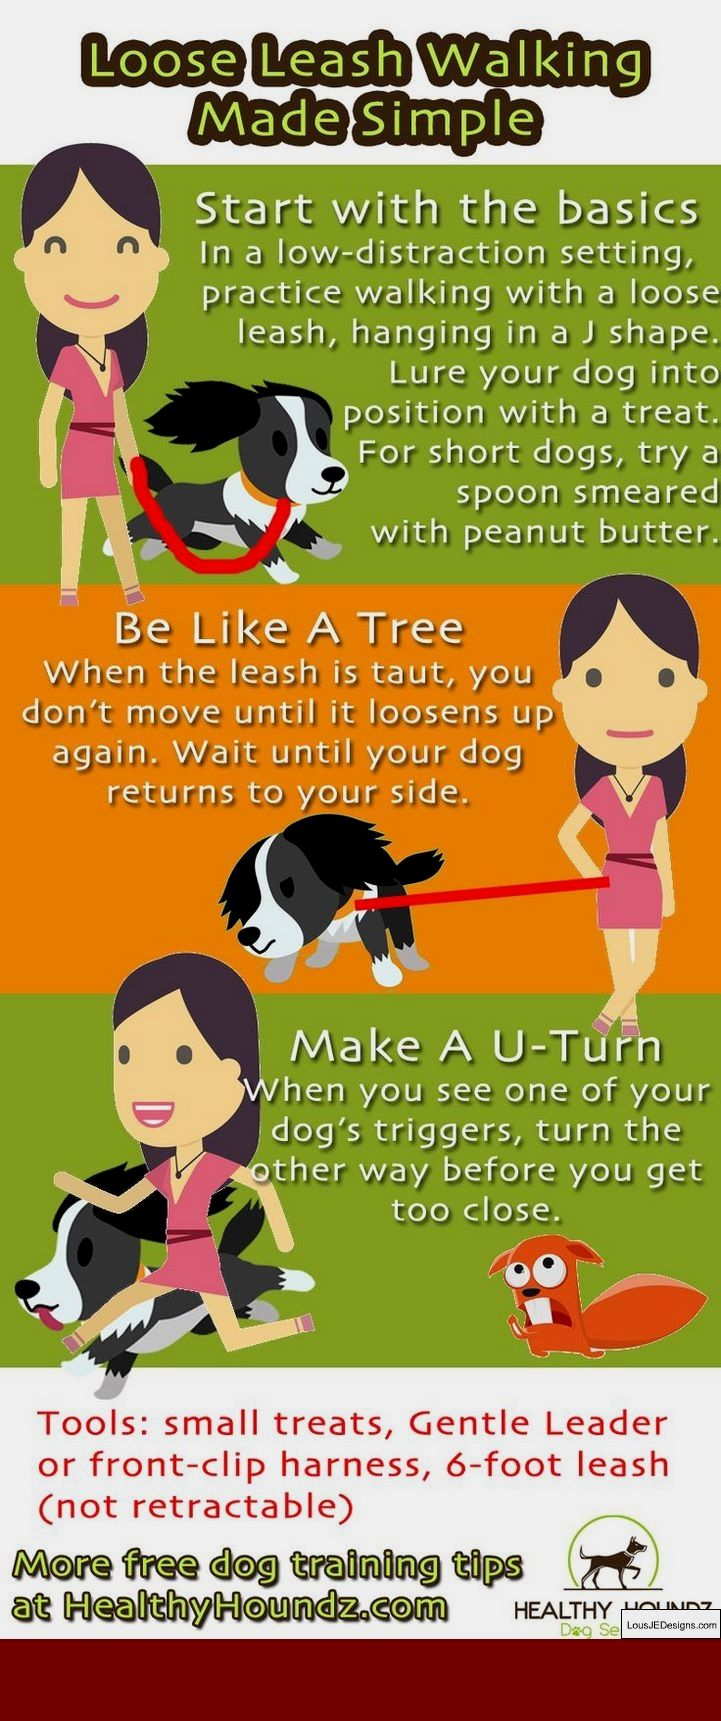 Dog Training Tips Loose Leash Walking And Pics Of How To Train A